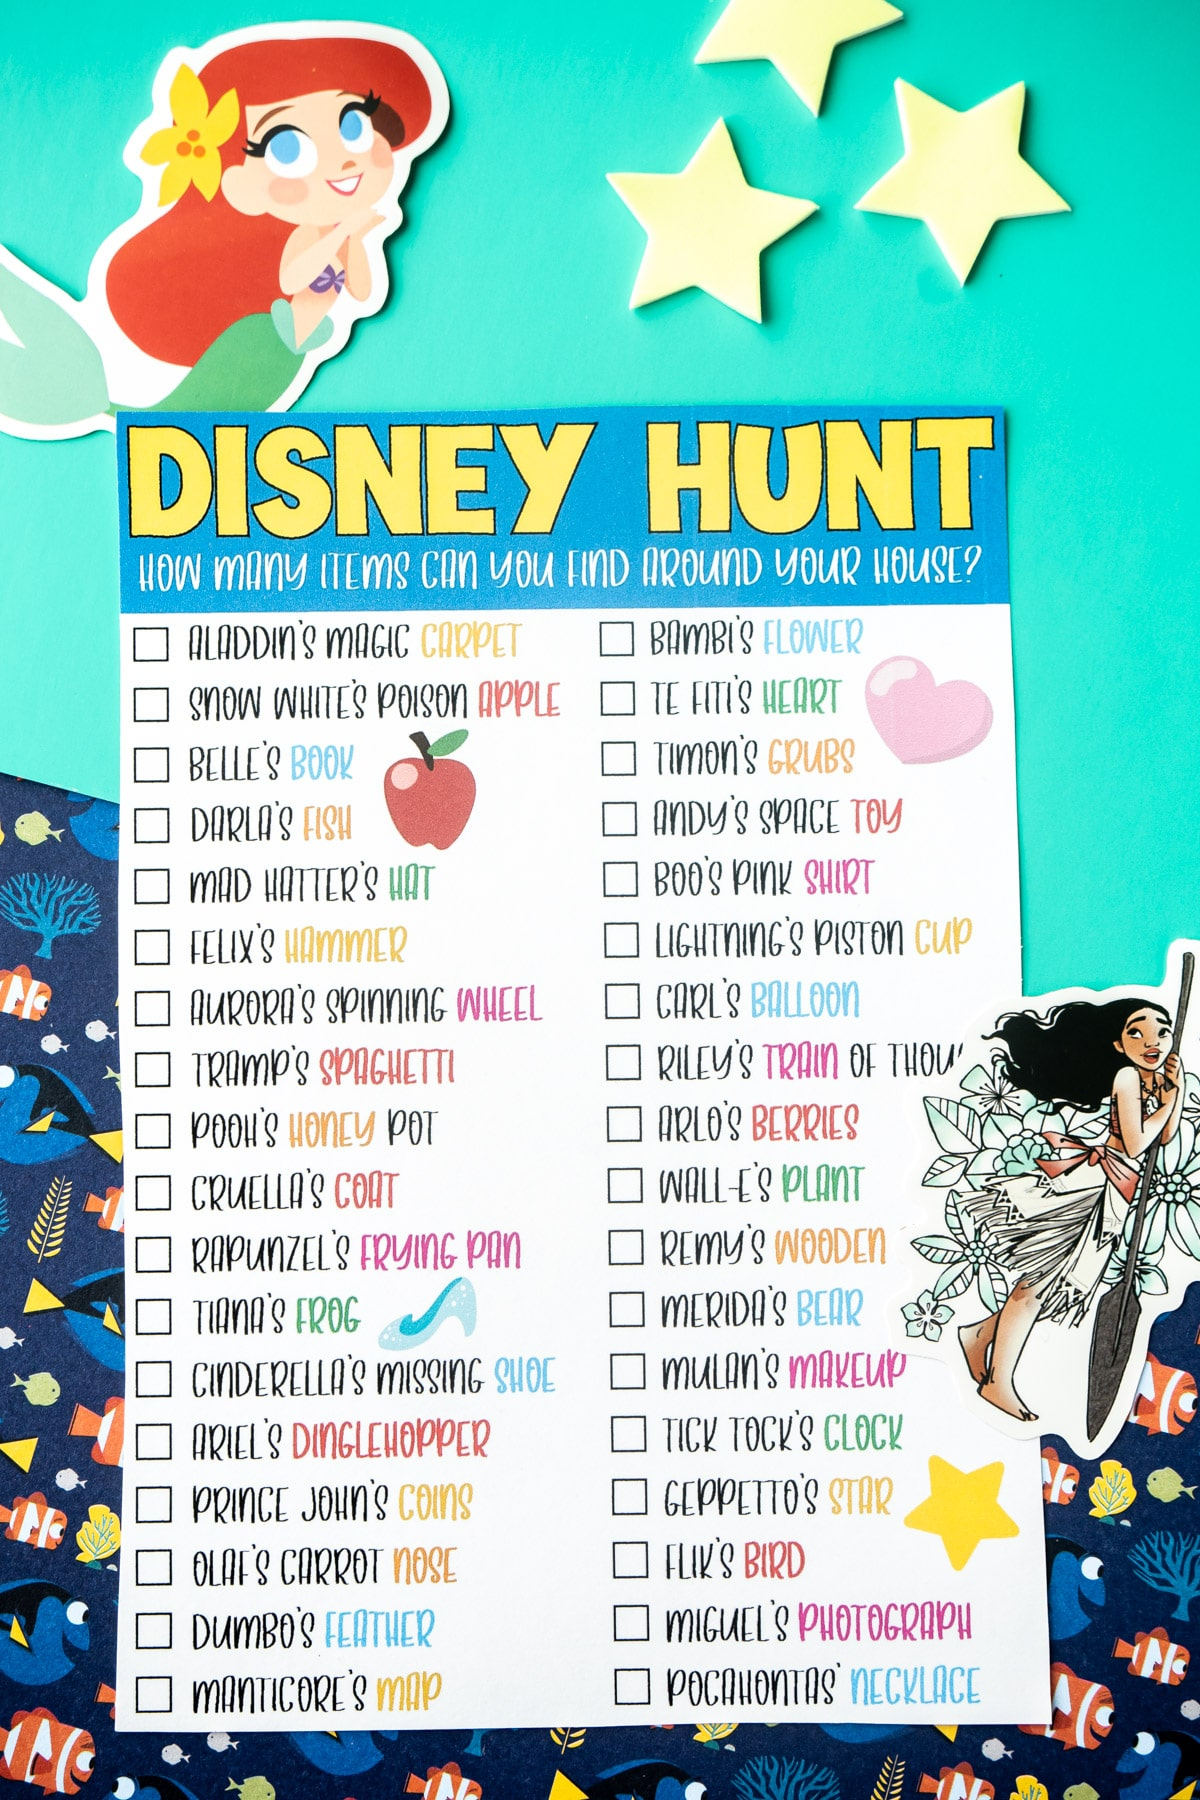 Disney scavenger hunt with Ariel and Moana stickers